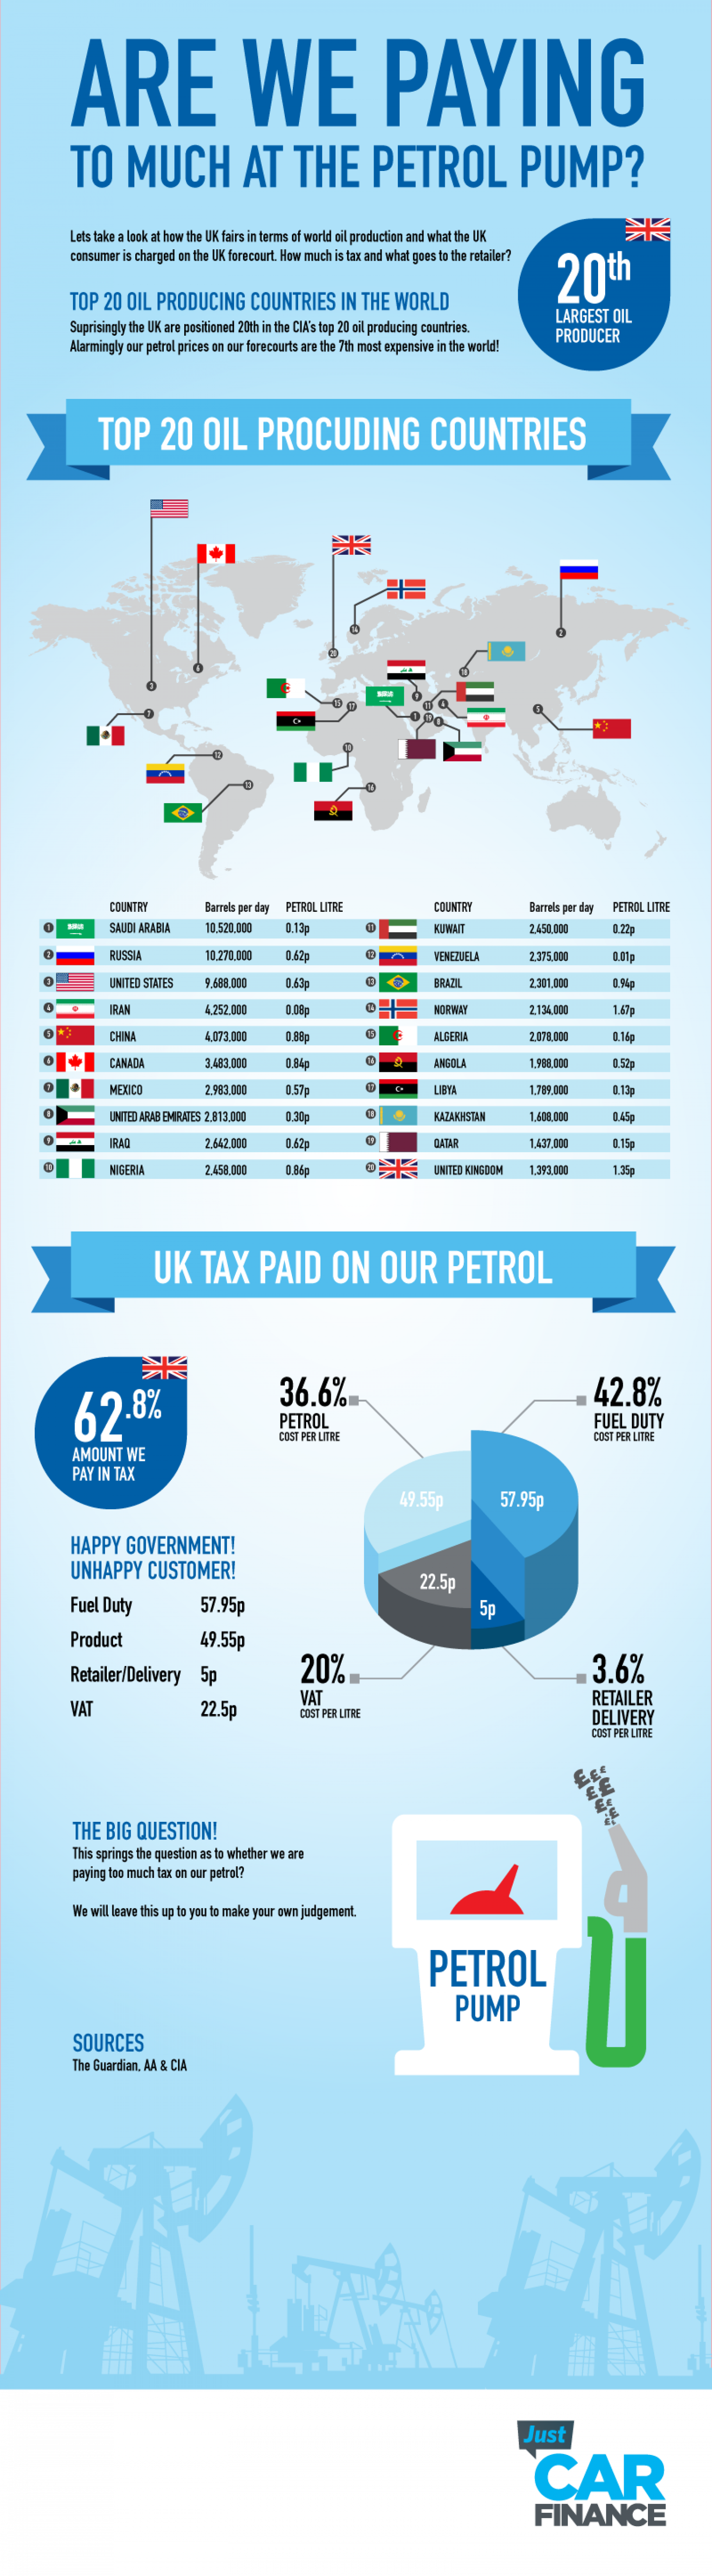 Are we paying to much at the pump Infographic